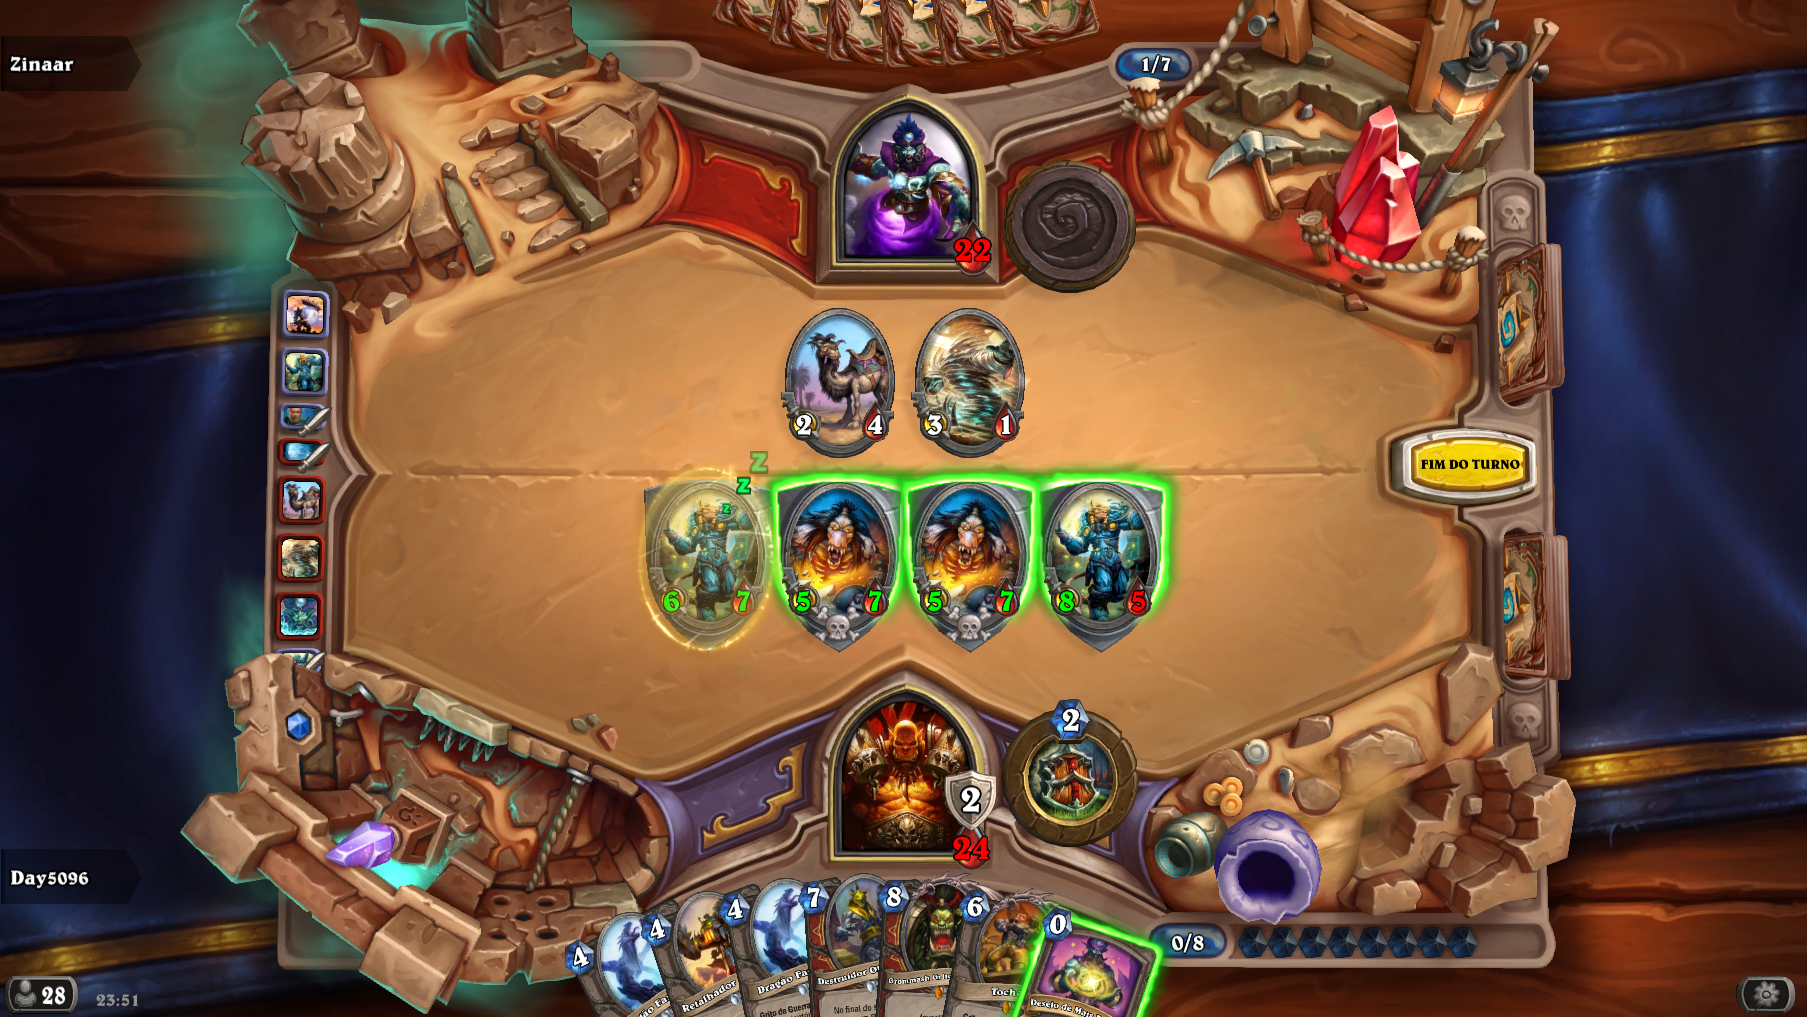 Hearthstone Screenshot 11-12-15 23.52.00